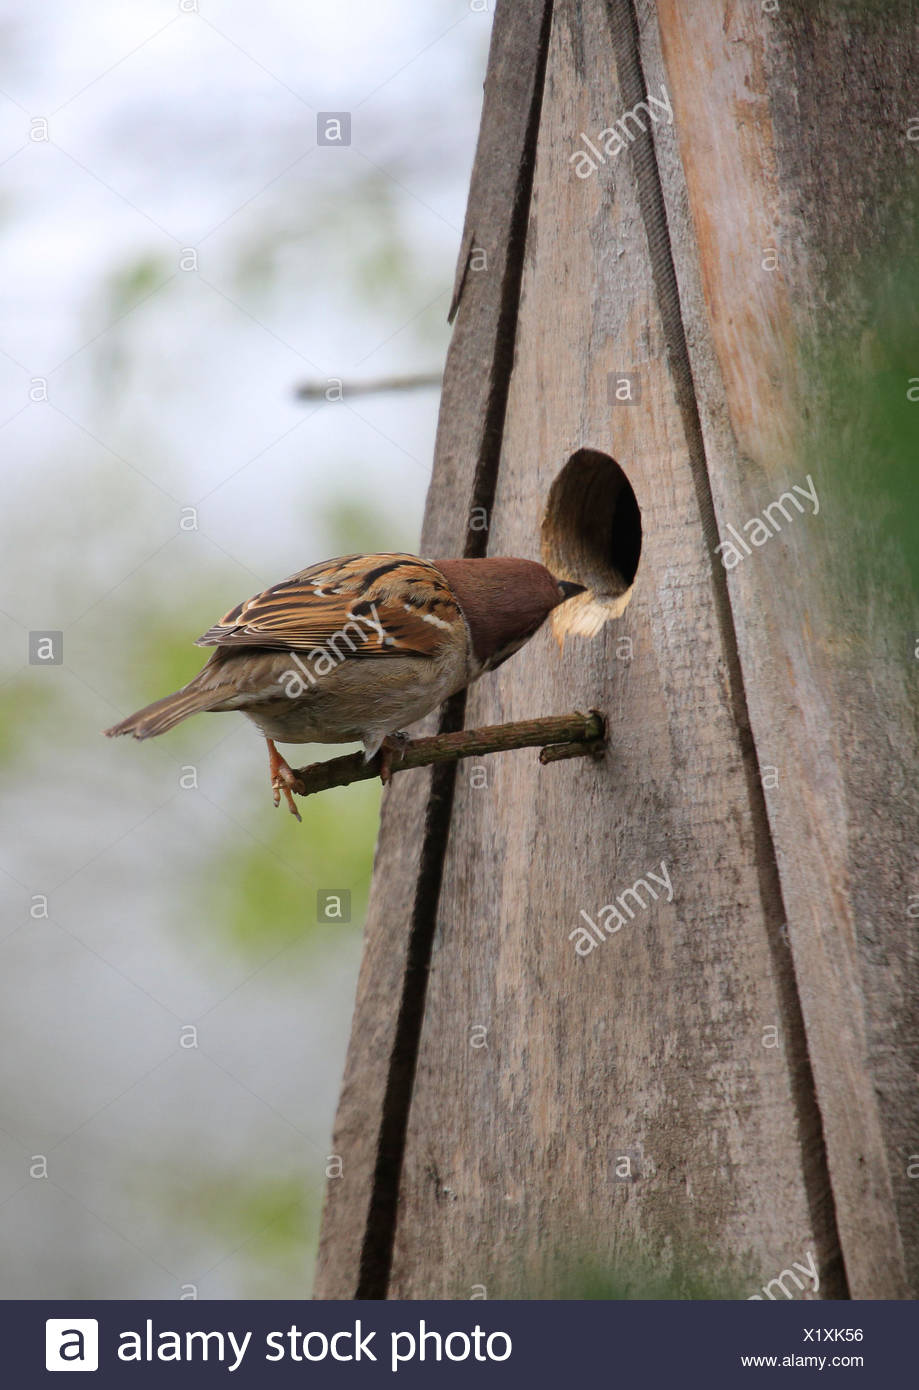 Breeding place searches field sparrow (Passer montanus), - Stock Image